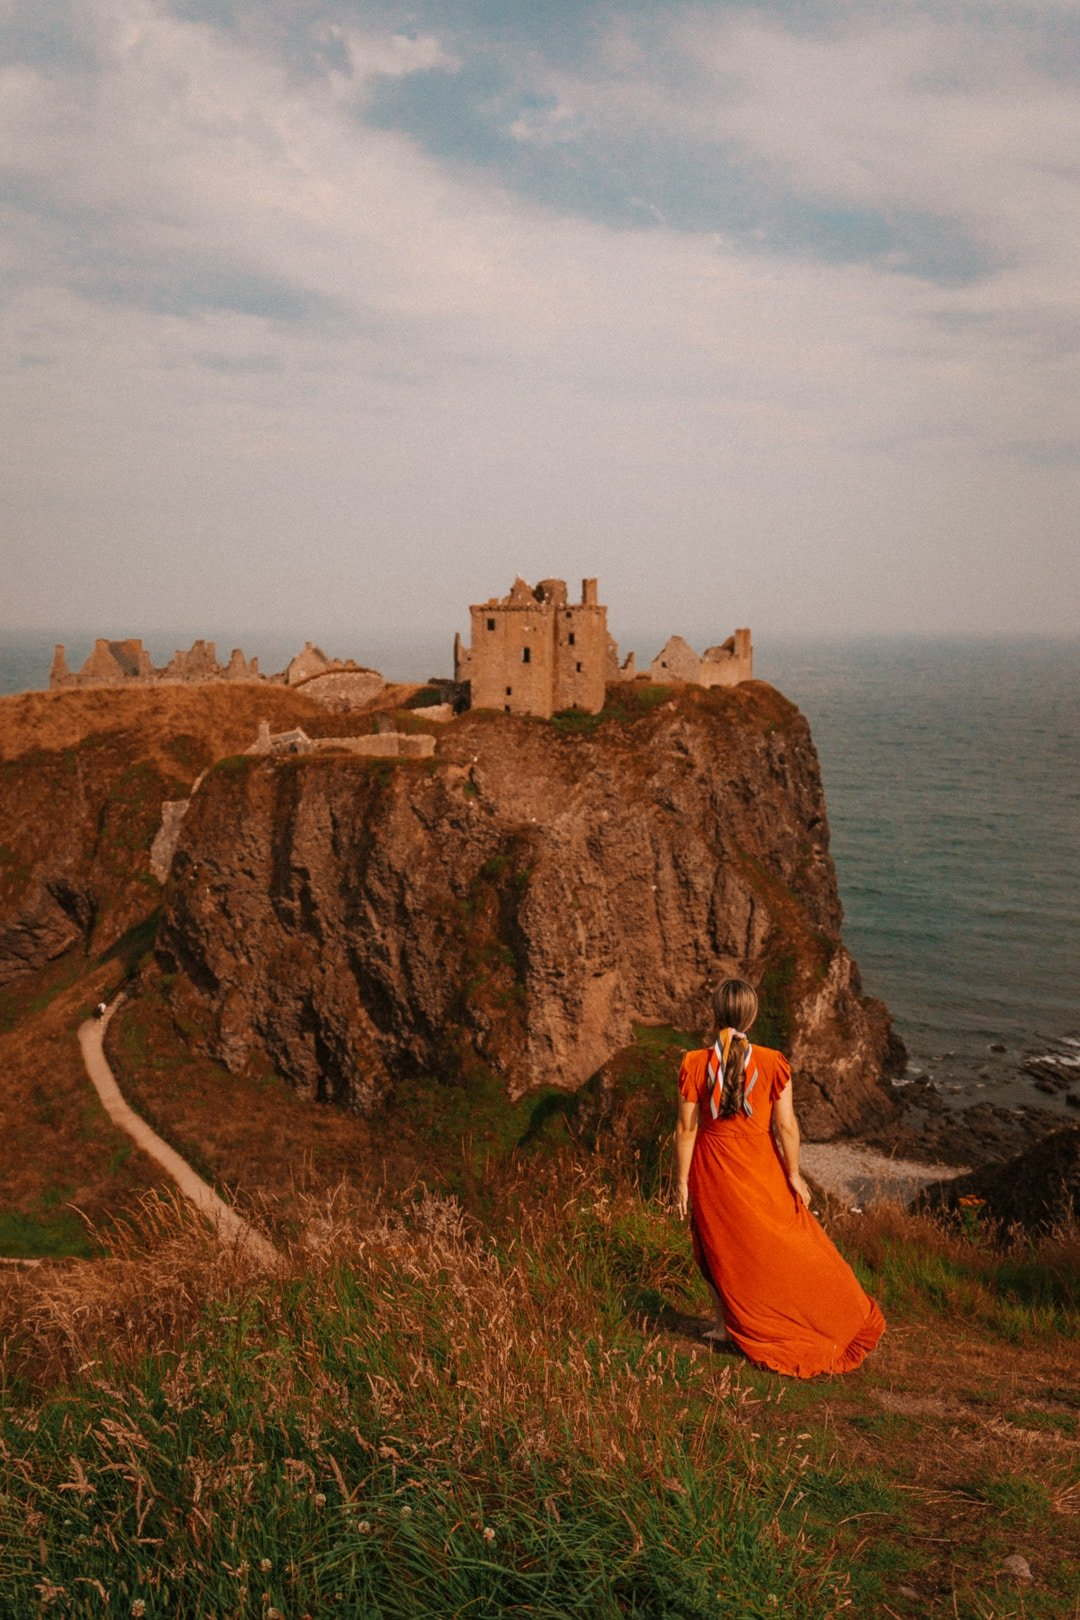 girl at dunnottar castle in scotland united kingdom, best places for landscape photography in scotland